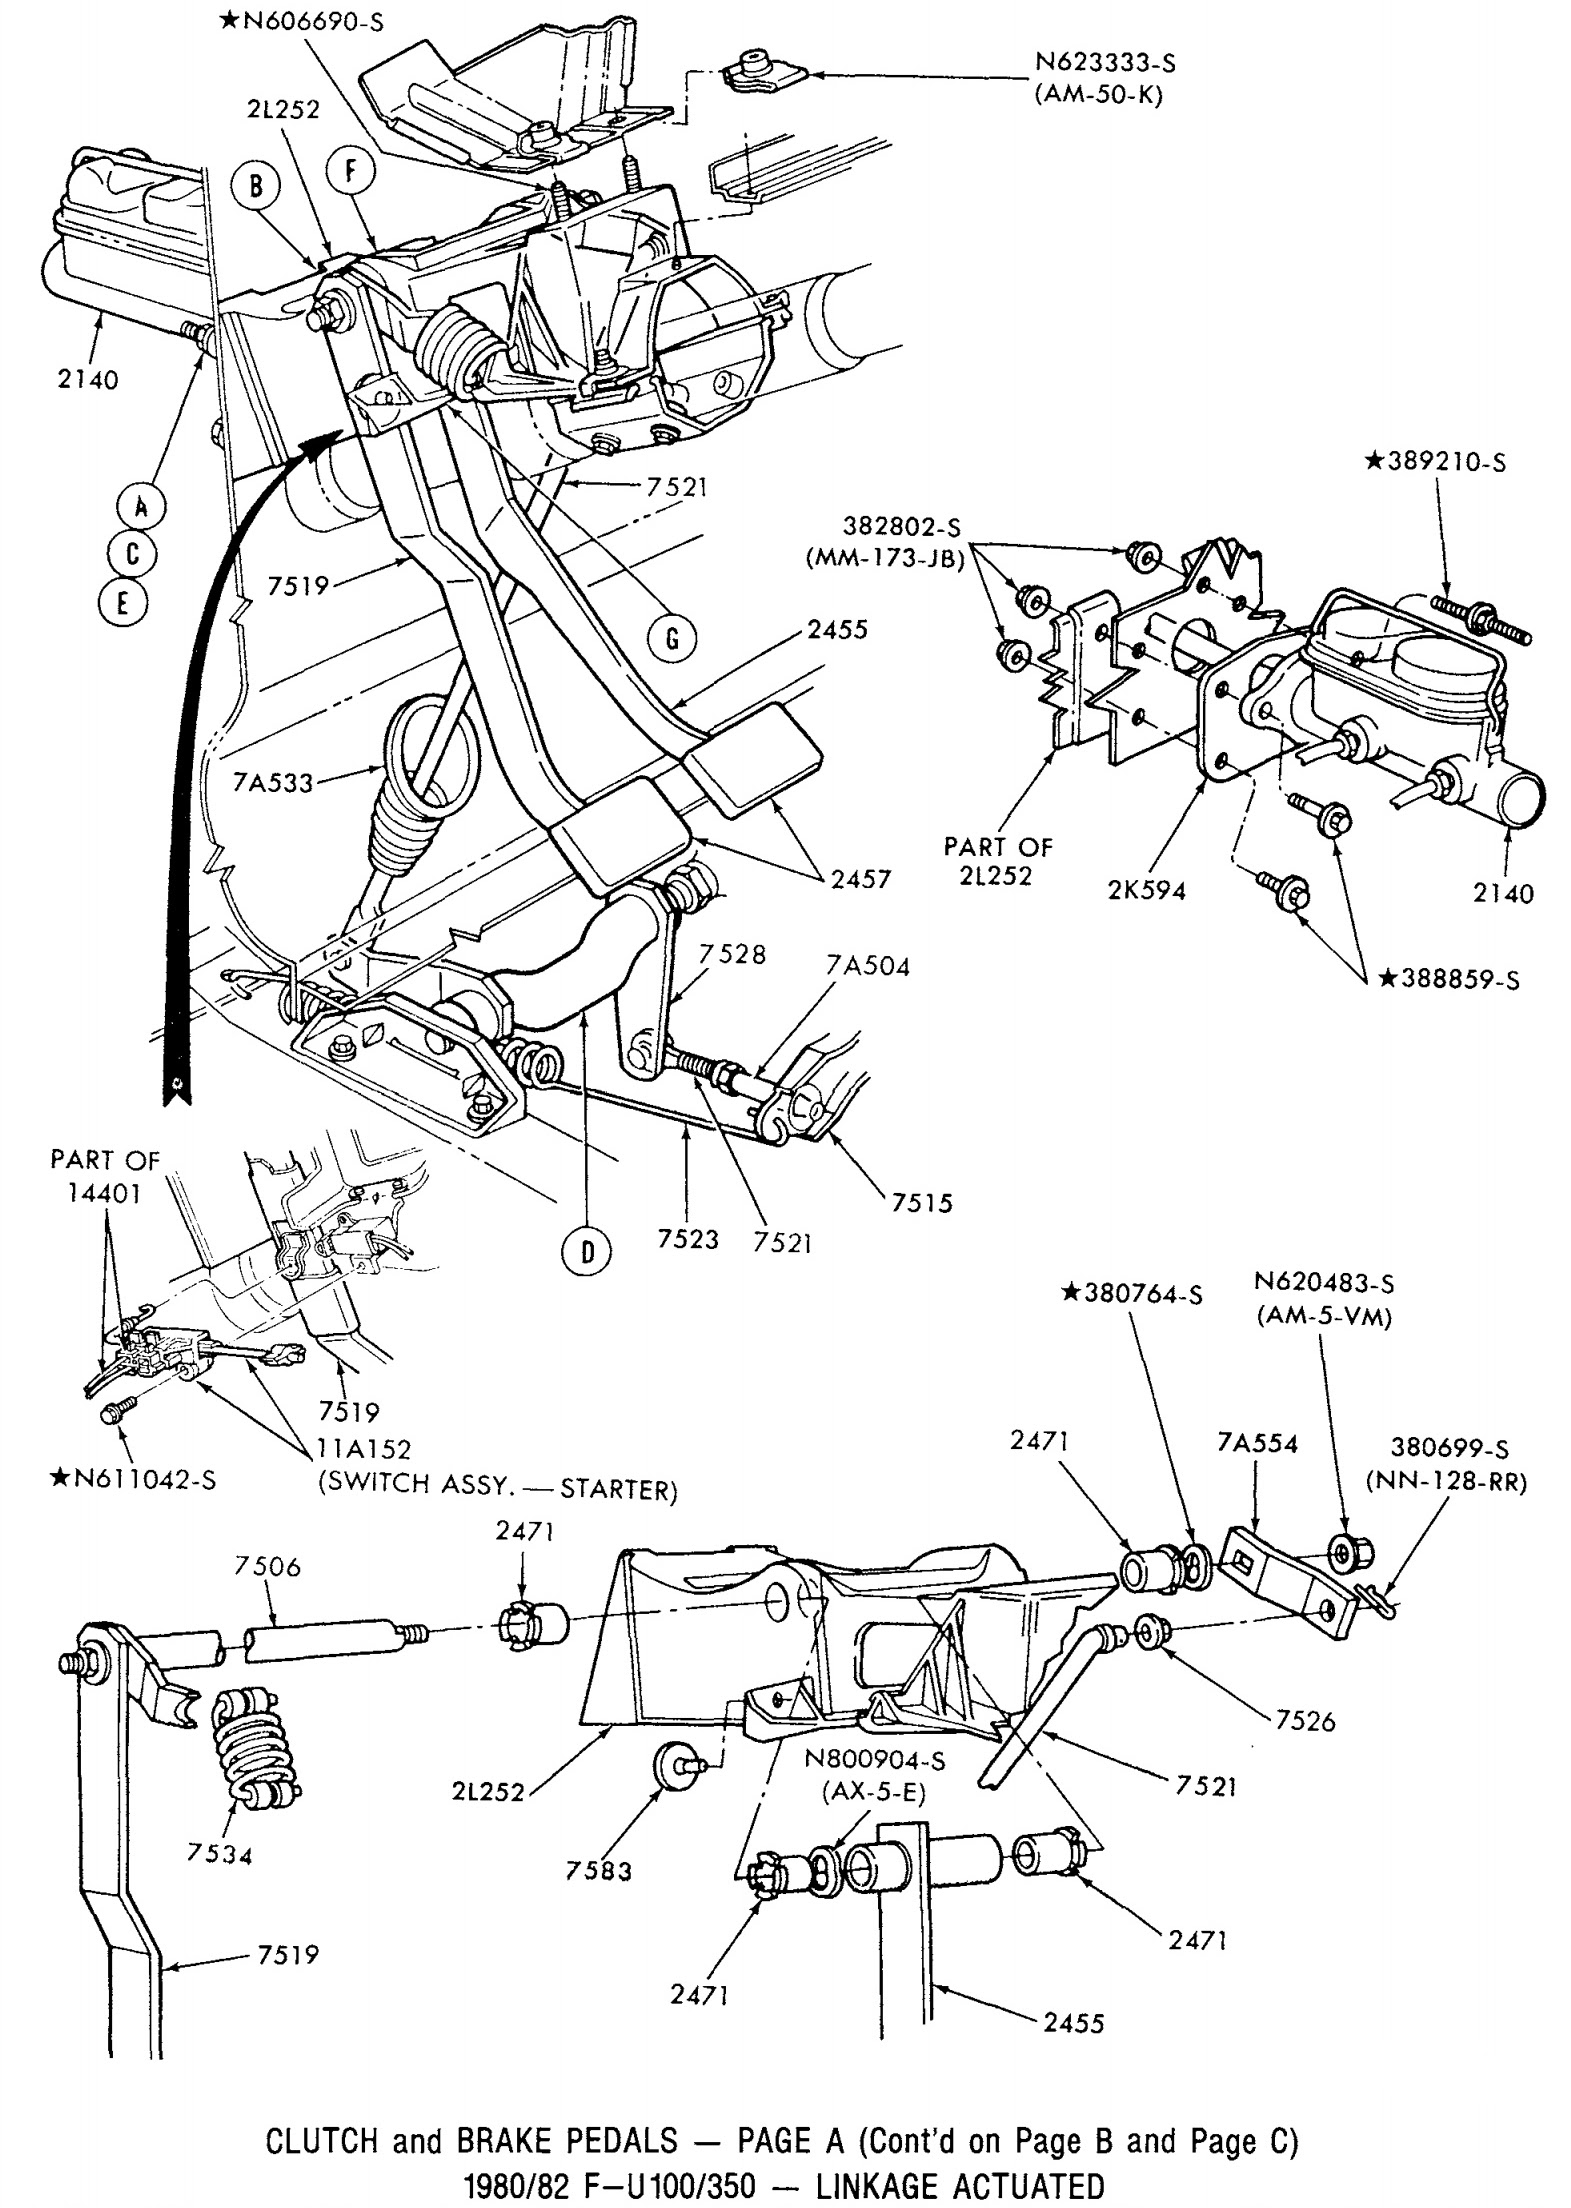 Official Ford 302 Engine Diagram | 1980s Ford 5 0 Engine Diagram |  | Fuse Wiring